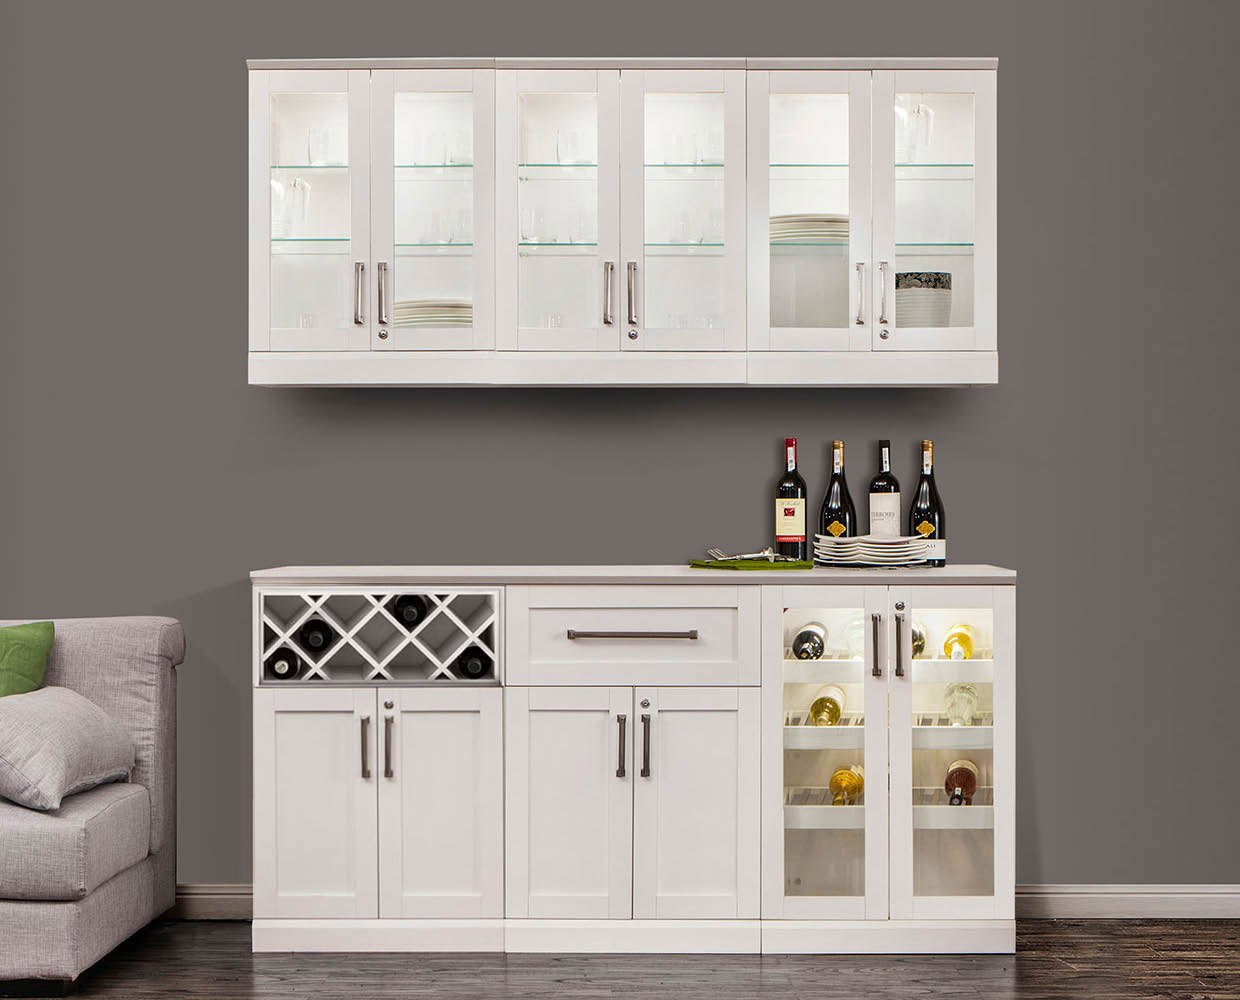 NewAge Products Home Bar Cabinet System (7-Piece Set)